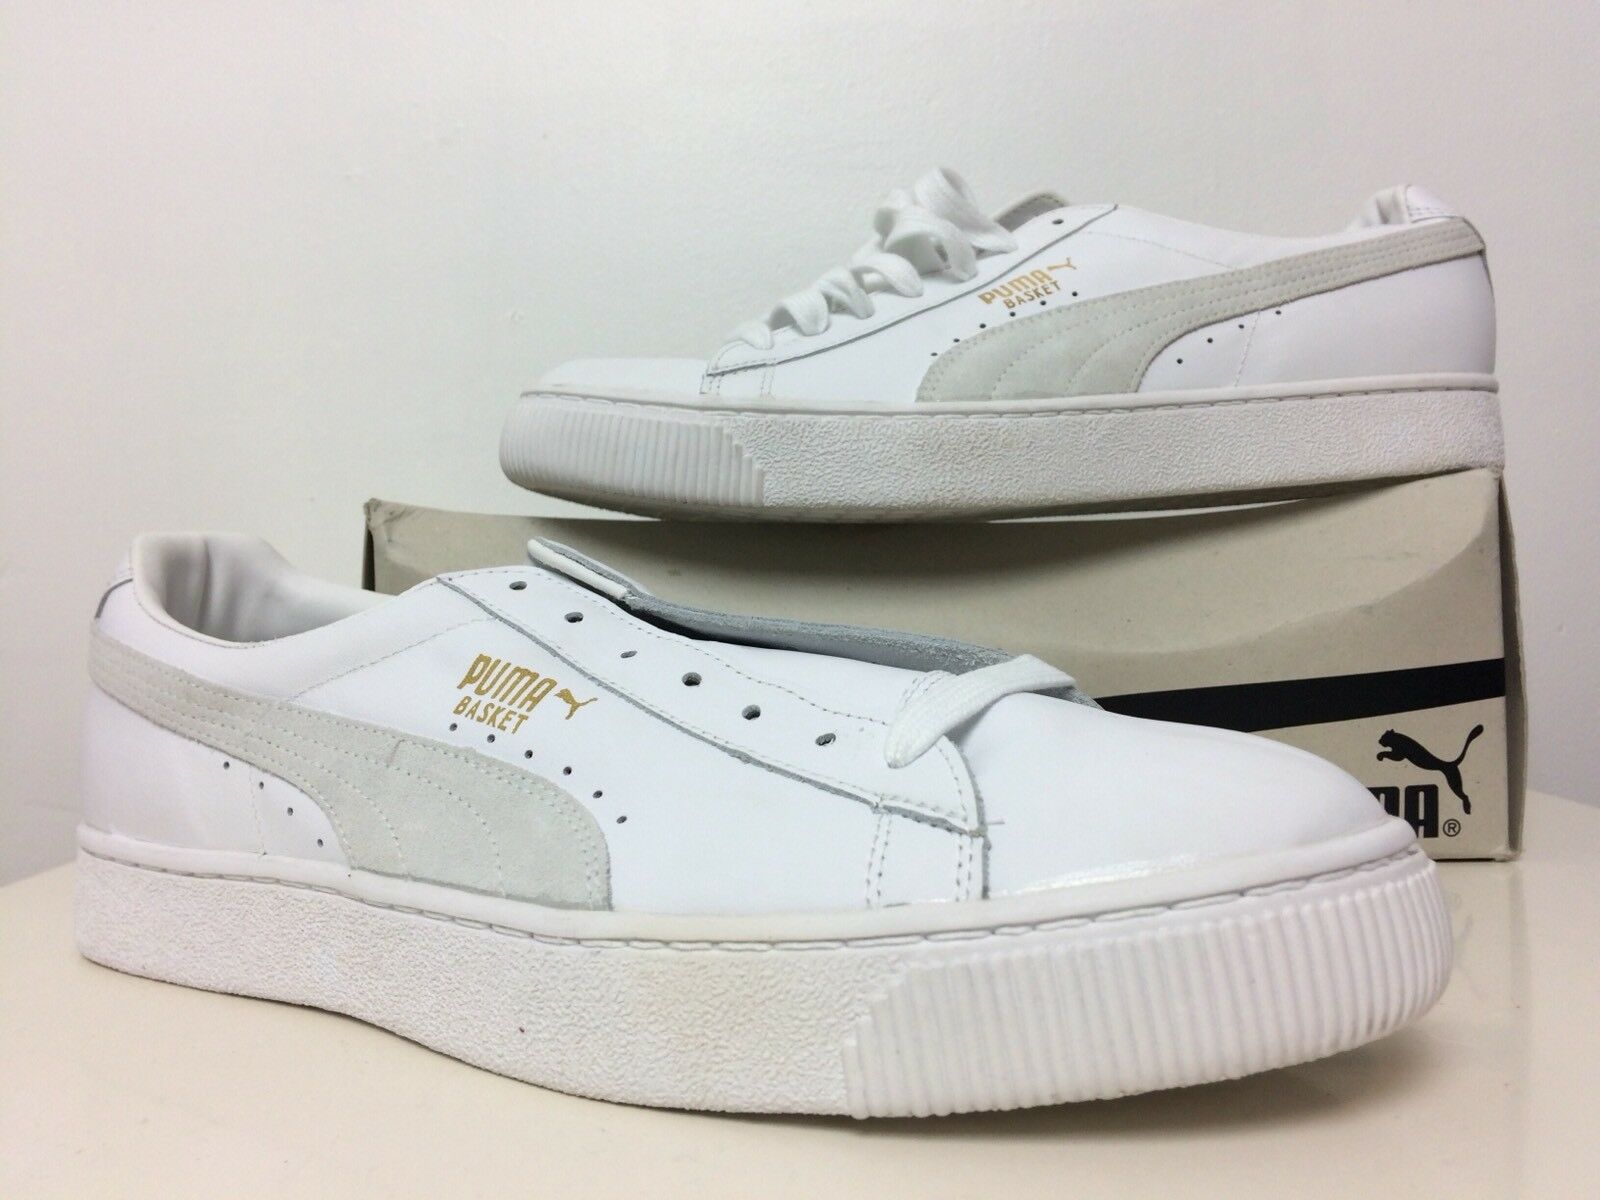 New In Box PUMA Men's Basket Classic Low Top White & Natural Sneakers Size US 13